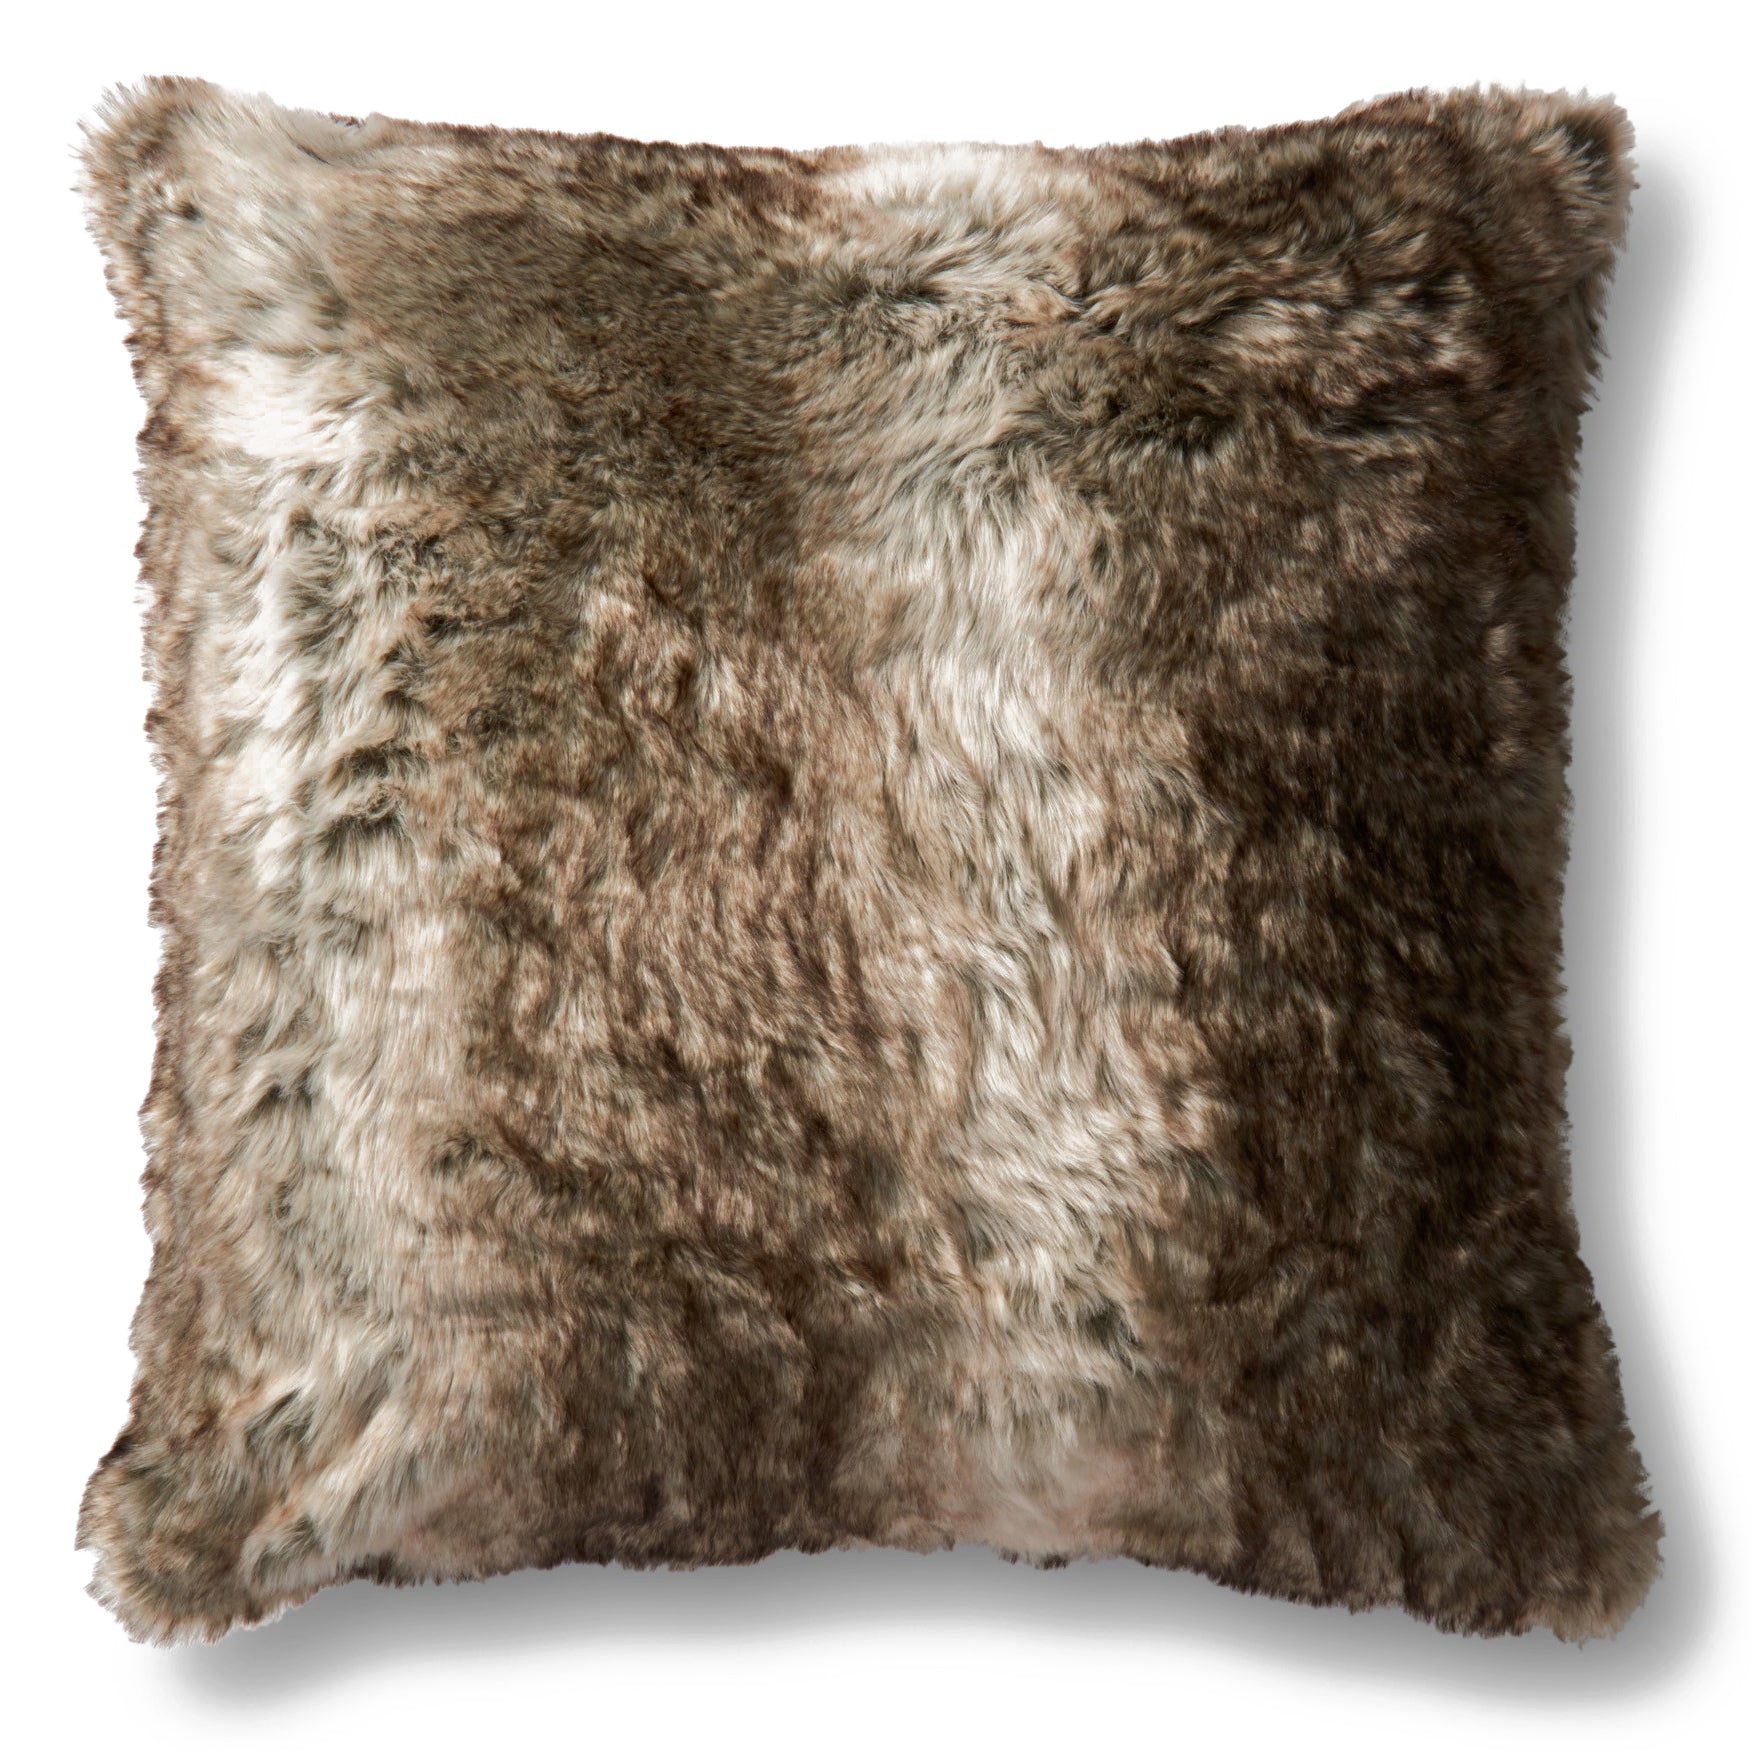 Brown and Tan Faux Fur Pillow